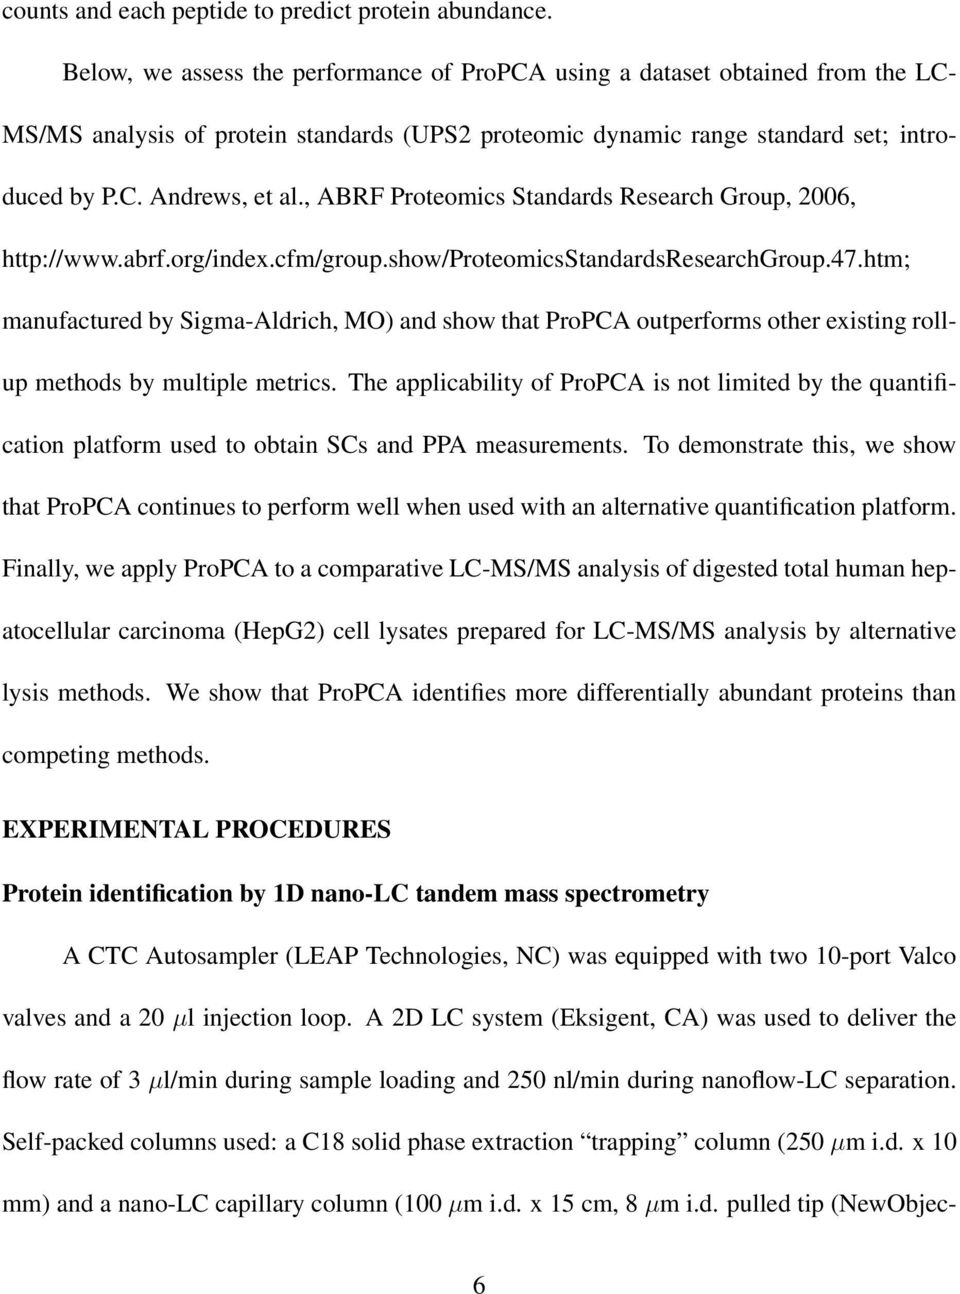 , ABRF Proteomics Standards Research Group, 2006, http://www.abrf.org/index.cfm/group.show/proteomicsstandardsresearchgroup.47.